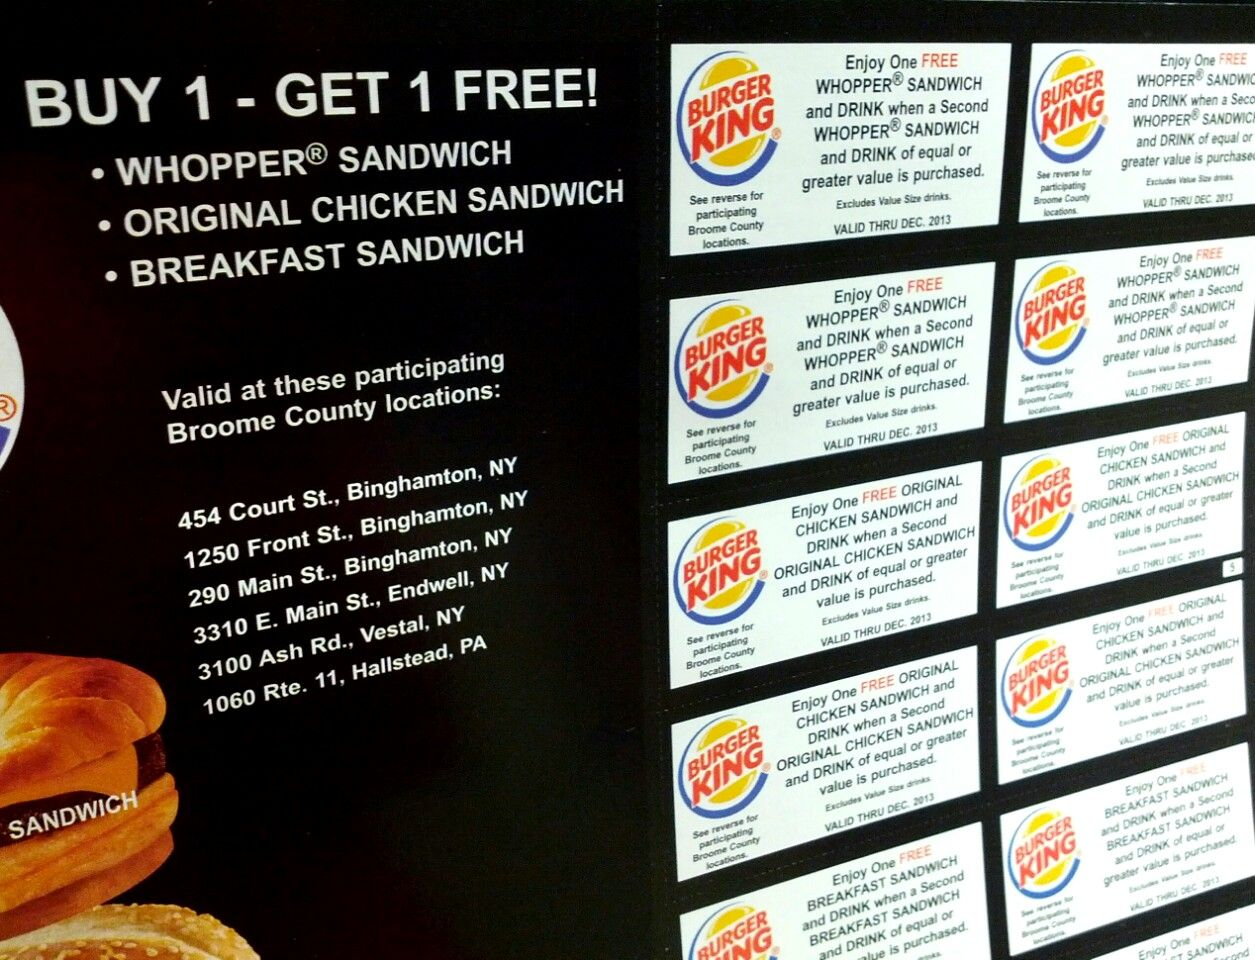 Burger King coupons from SaveAround Broome County 2013